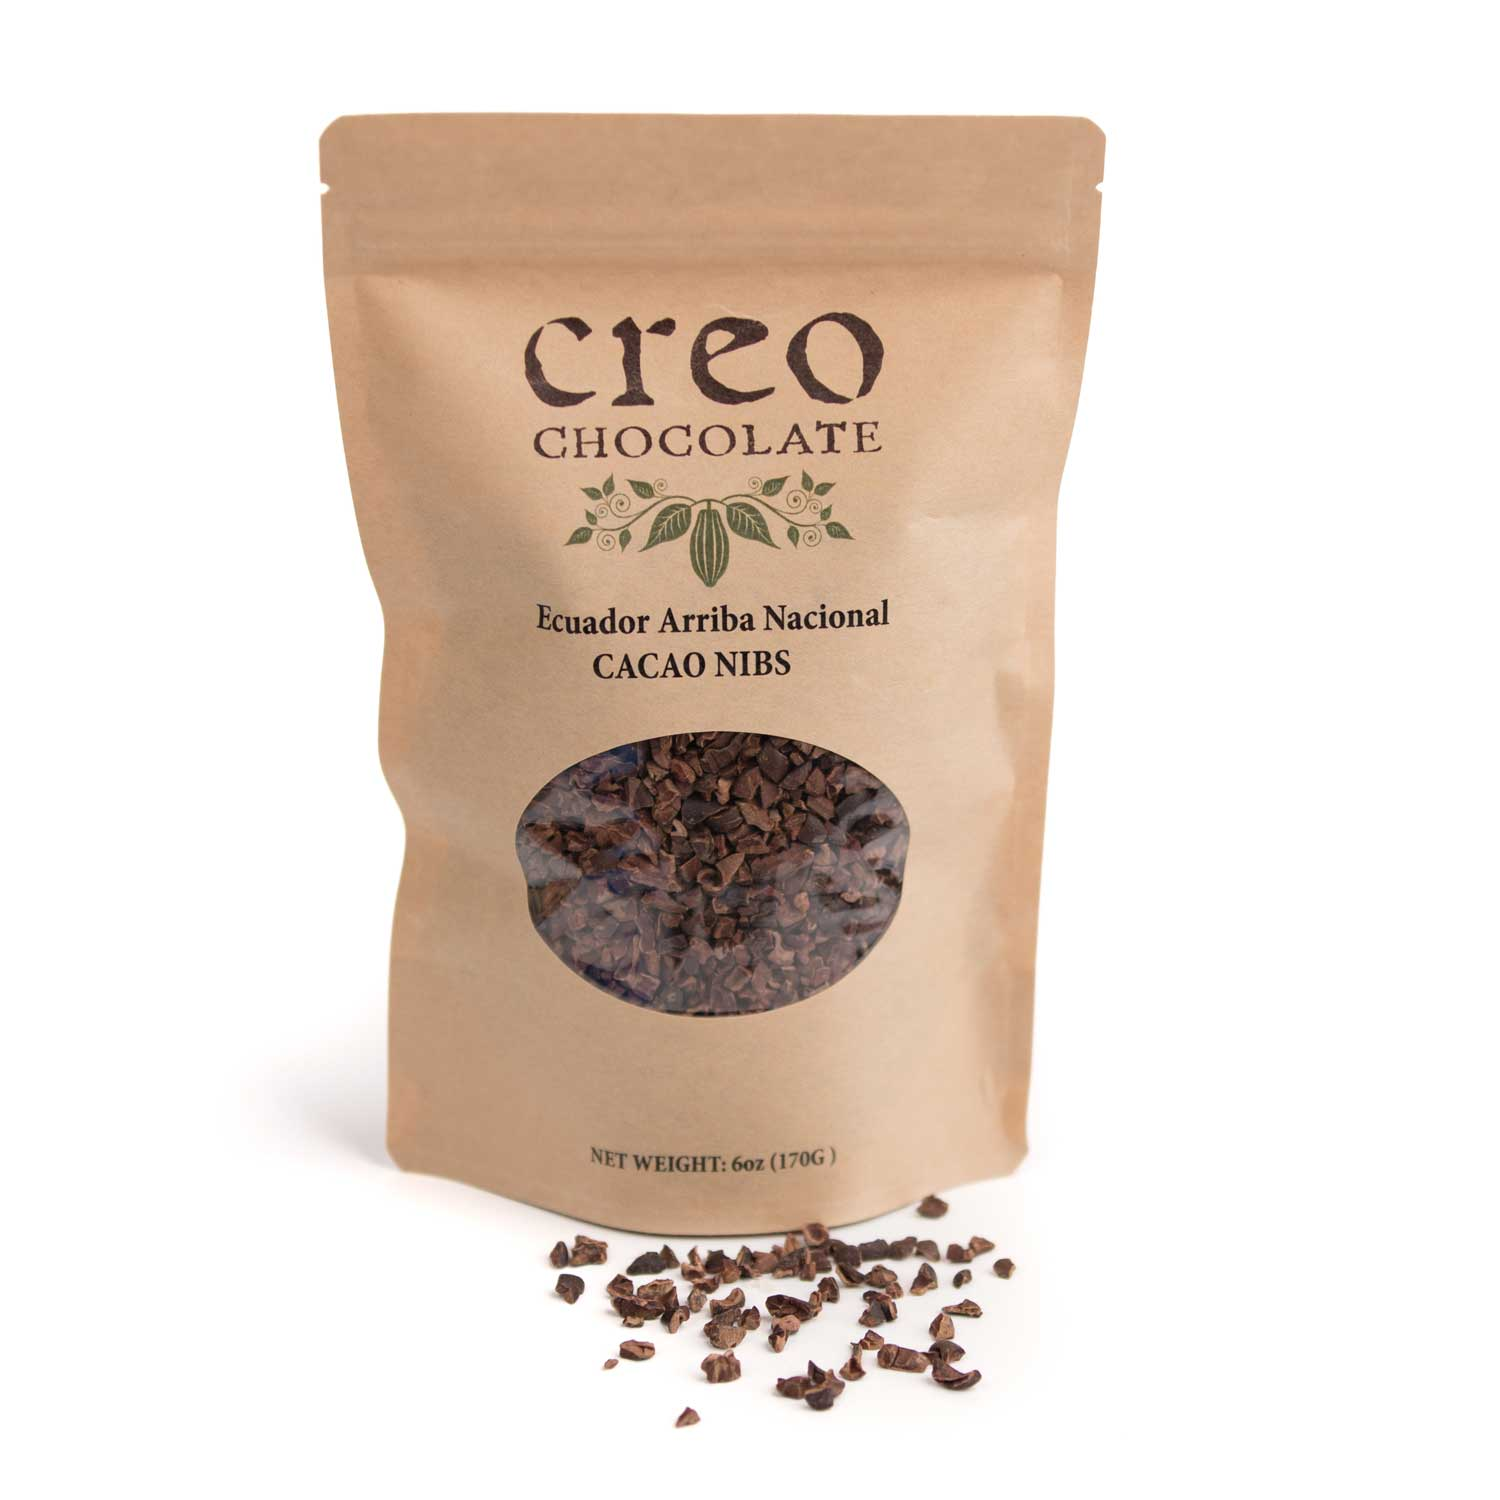 Roasted Cacao Nibs - Creo Chocolate